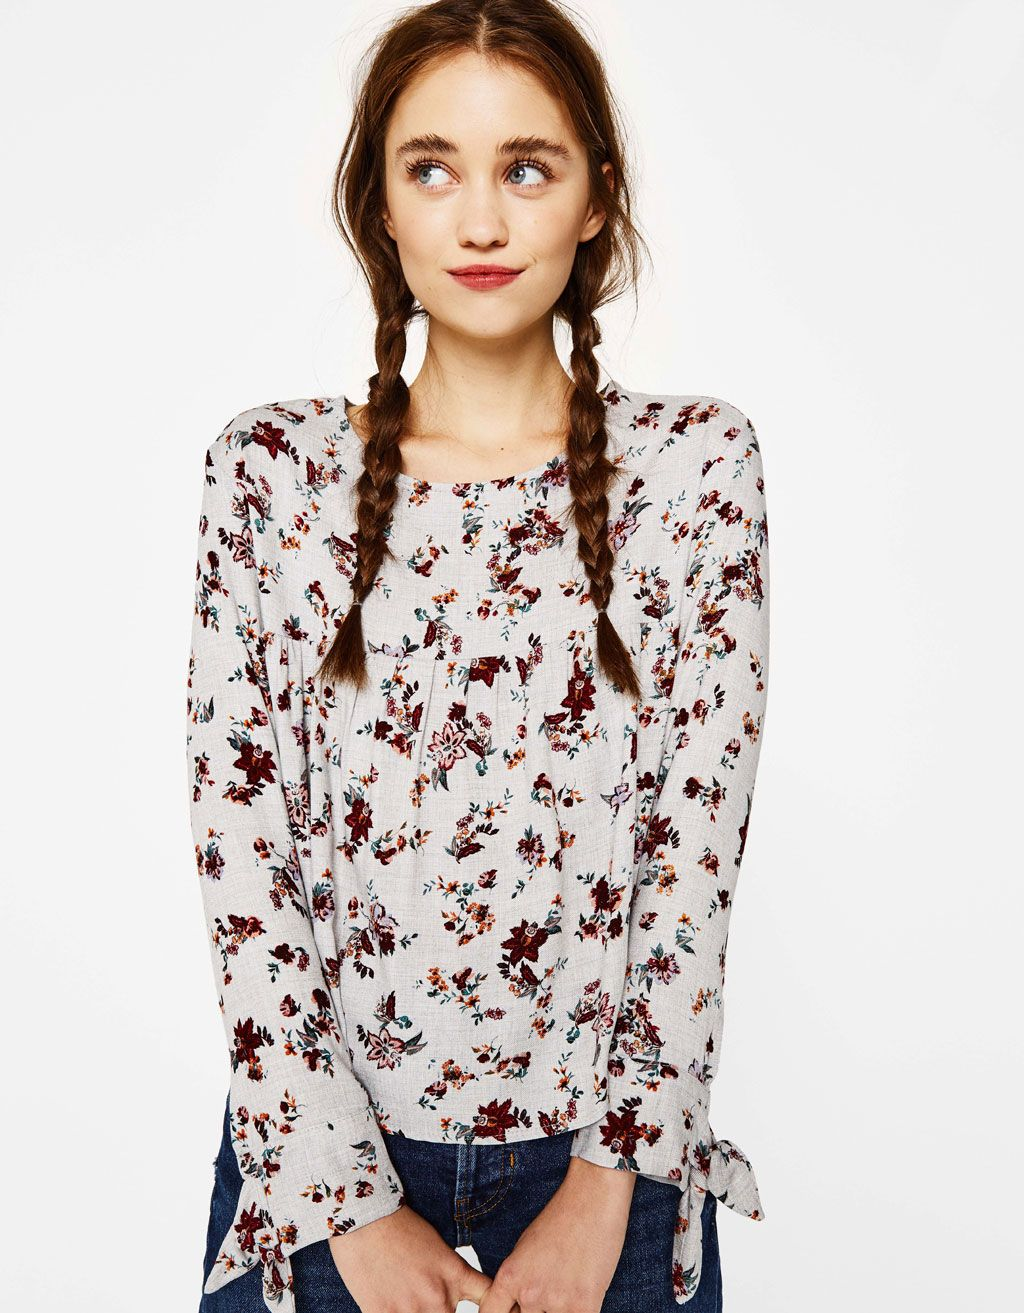 4dabc91020 Blouse with bows. Discover this and many more items in Bershka with ...